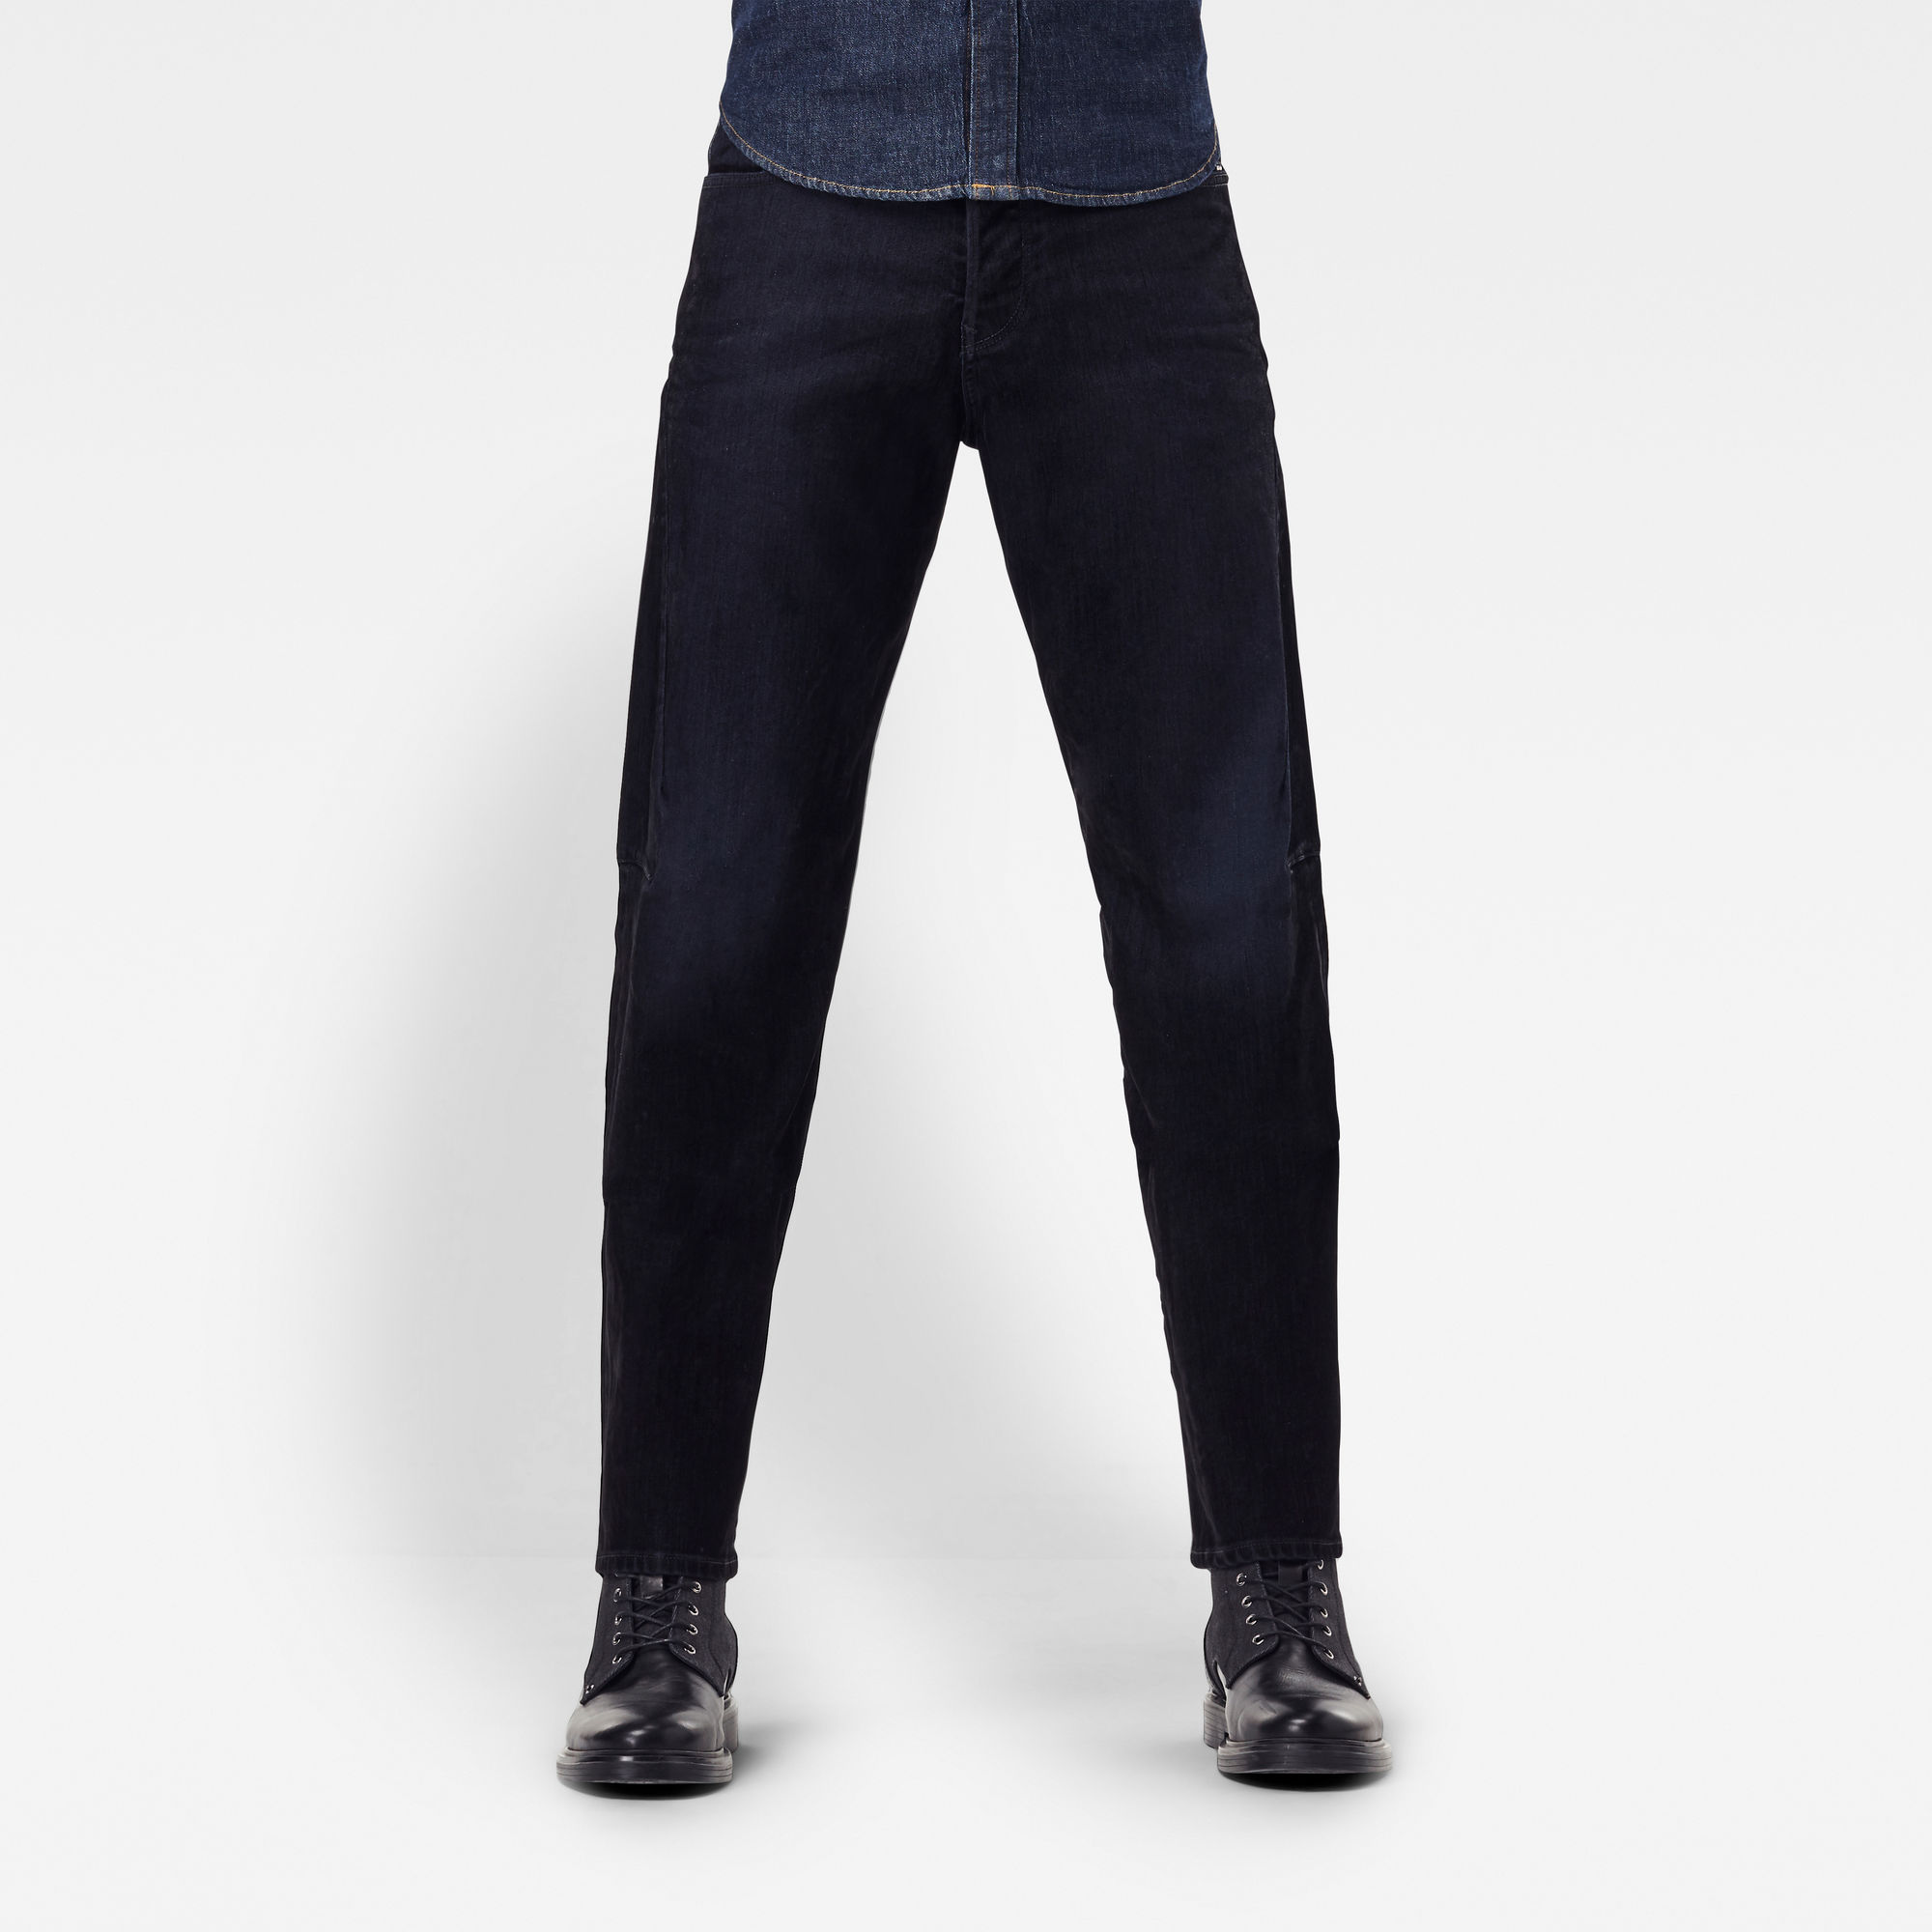 G-Star RAW Hombre Jeans Scutar 3D Slim Tapered Negro